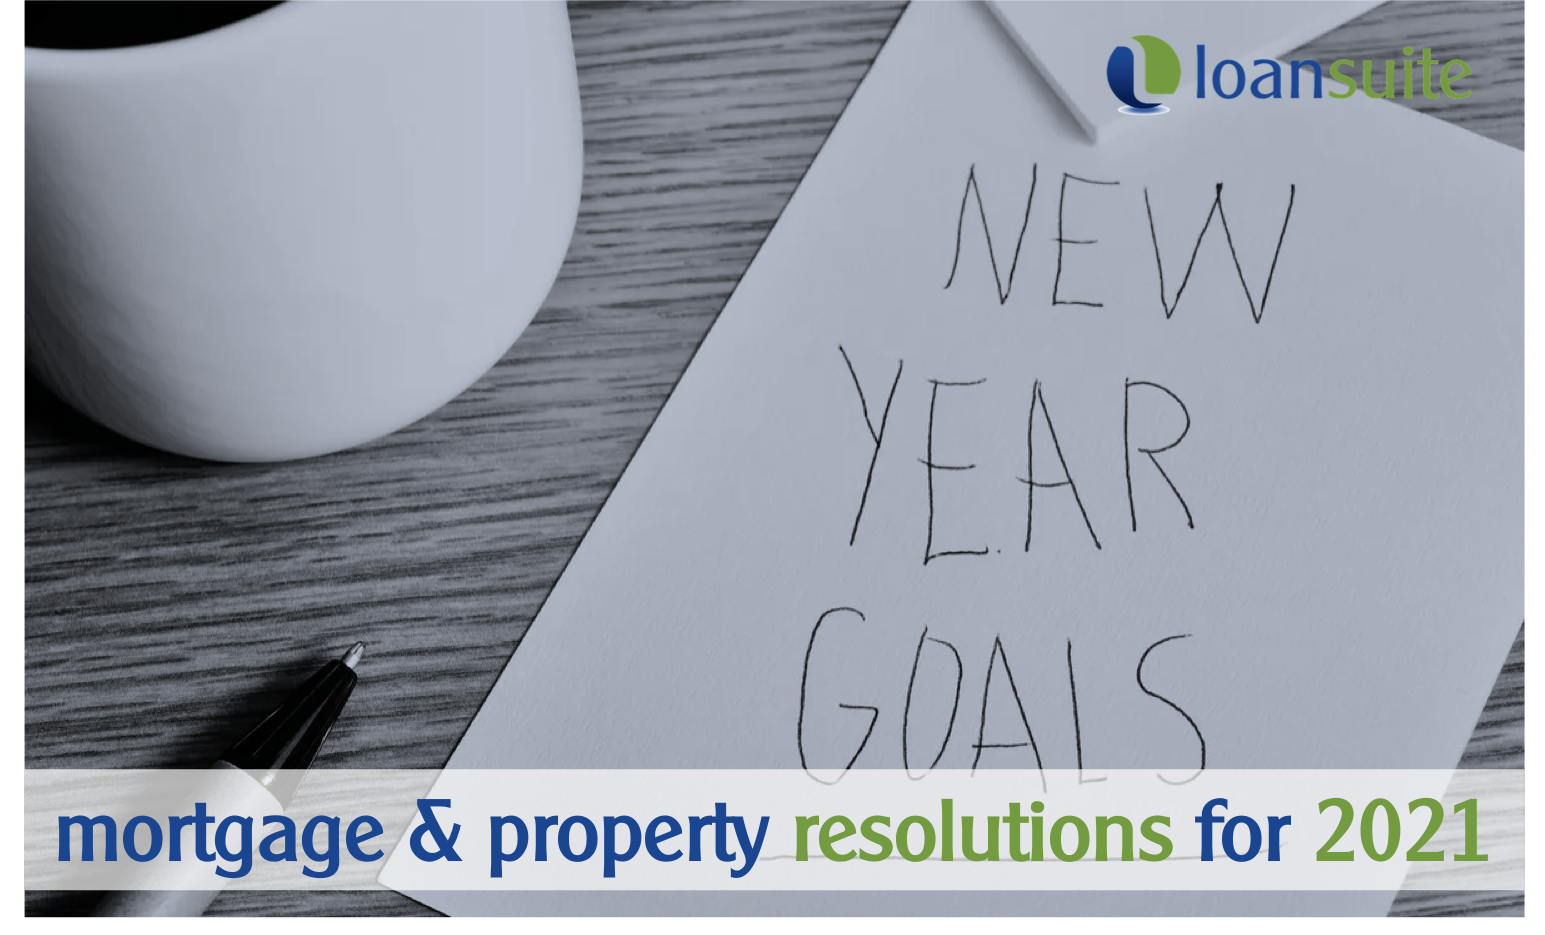 New Year Mortgage Resolutions - Loansuite - Mortgage Brokers